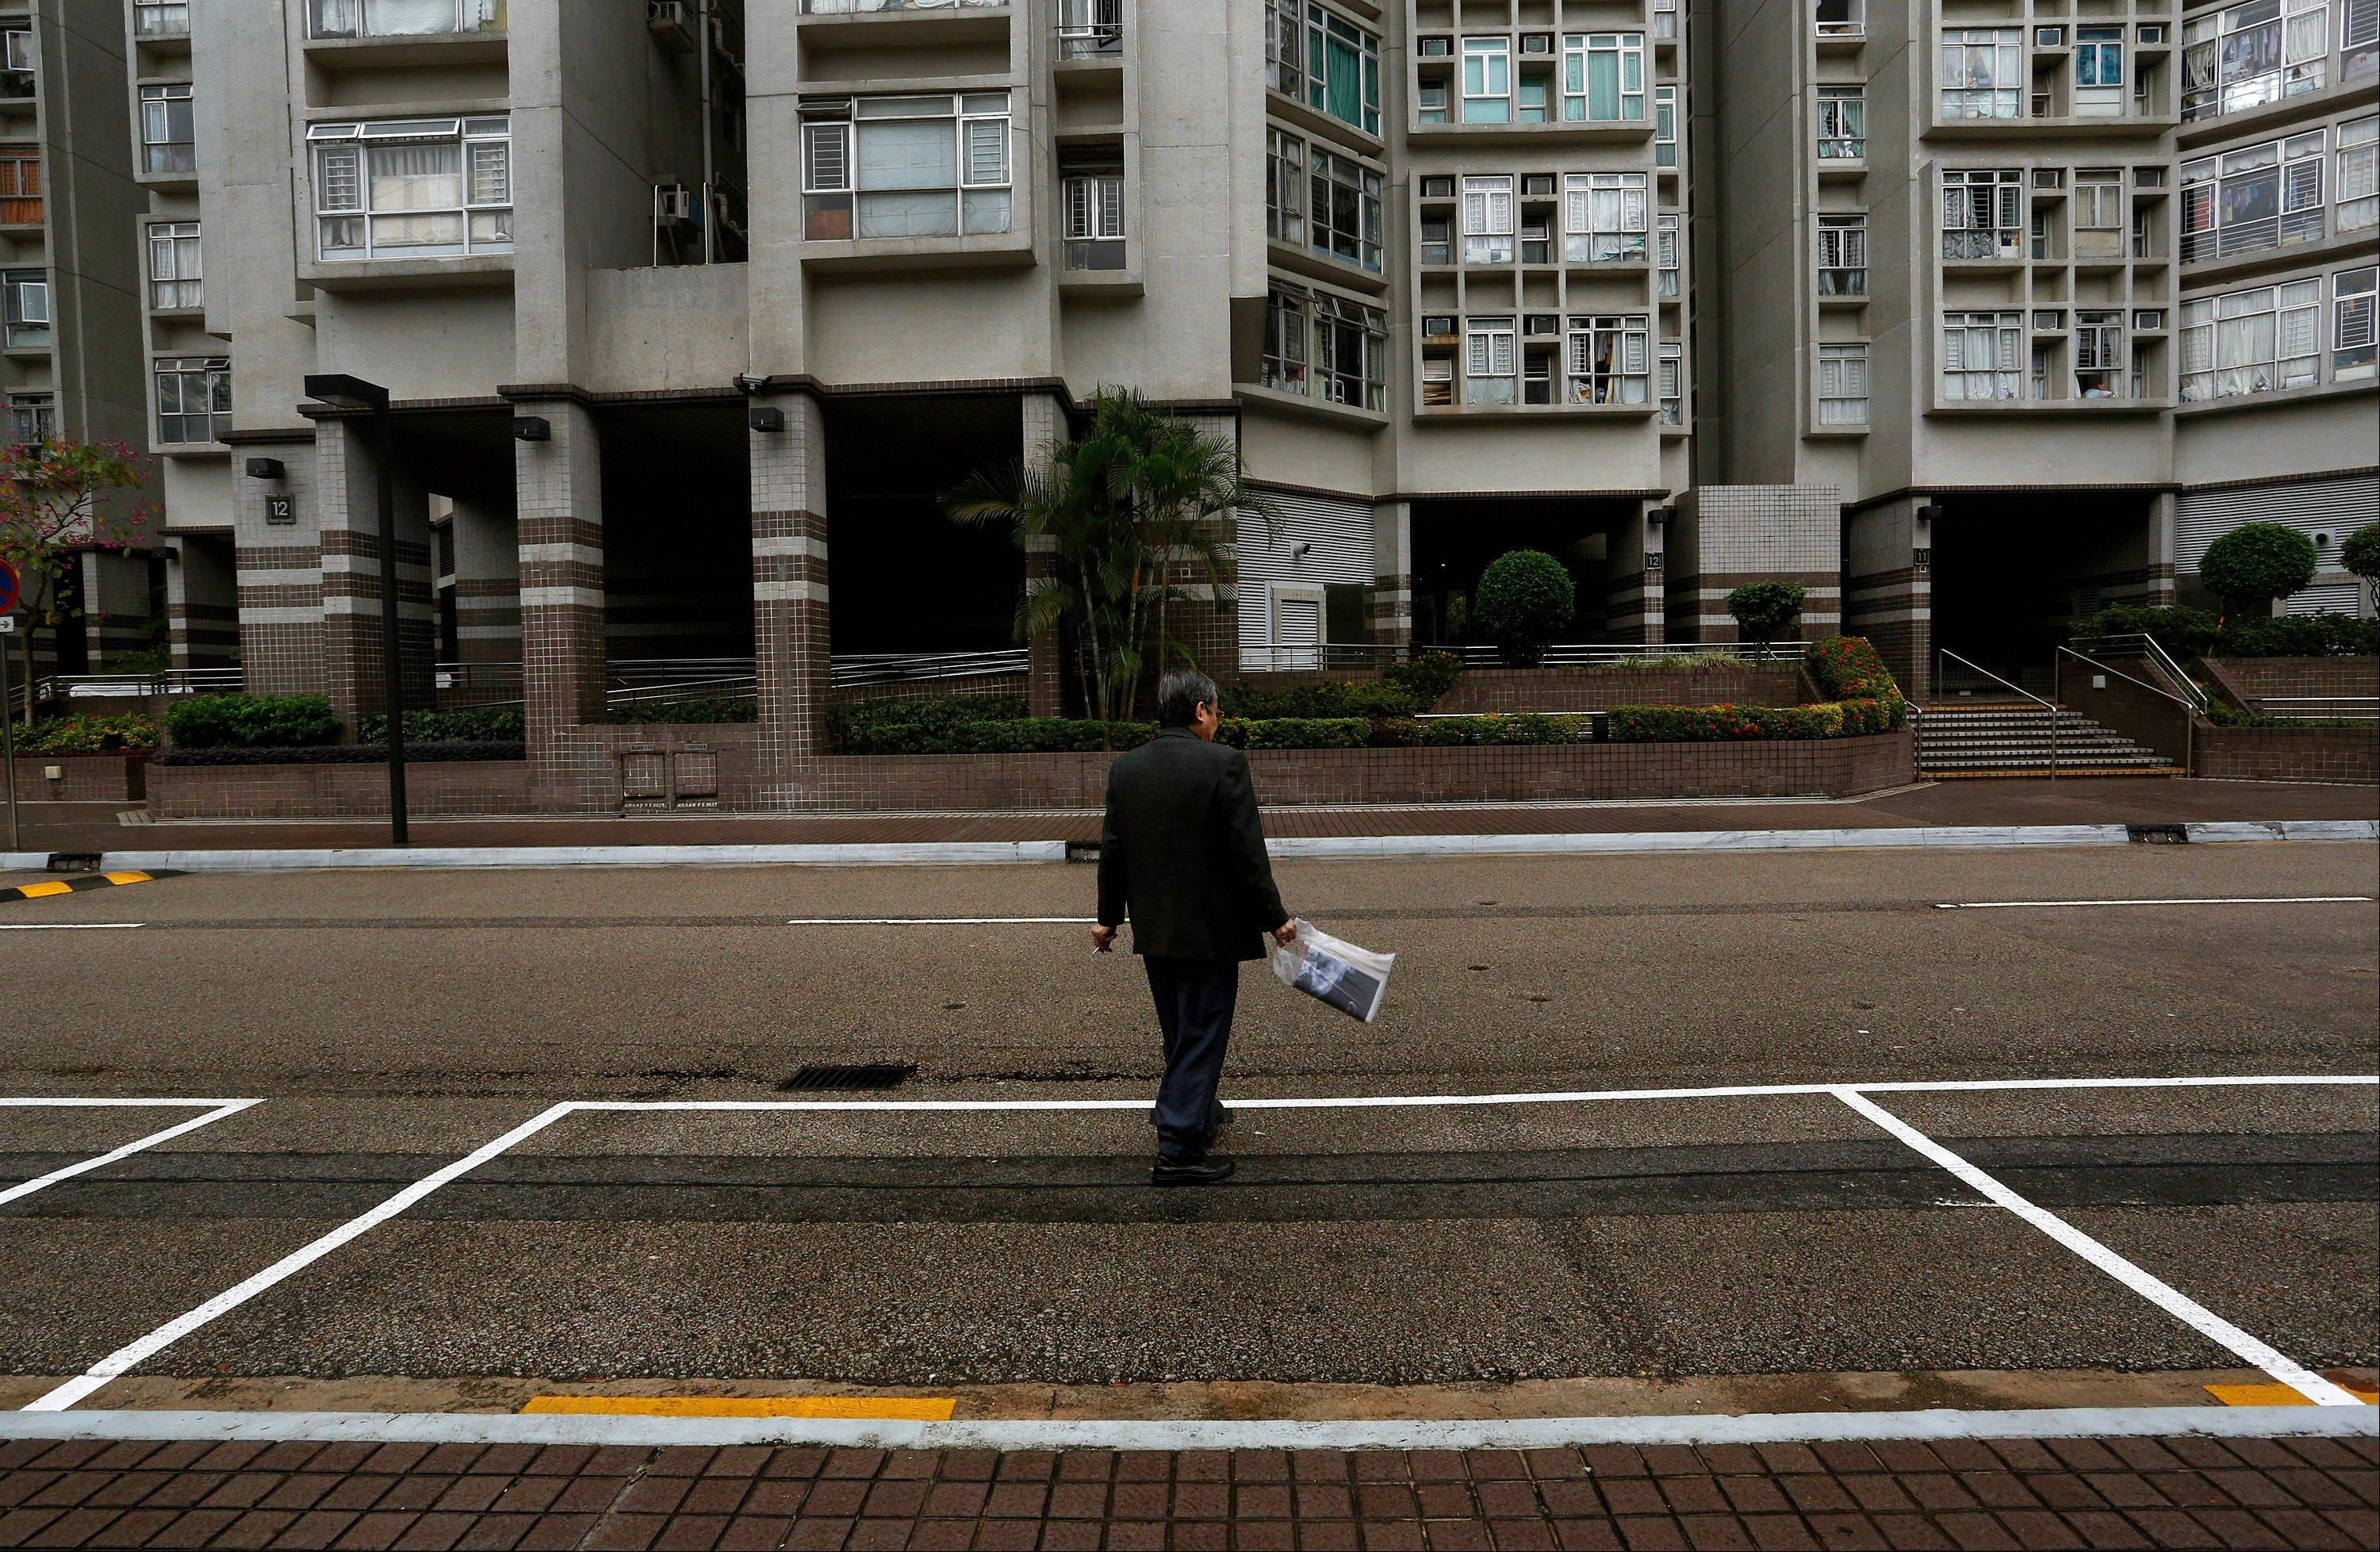 A man walks past a parking spot Tuesday outside a residential building in Hong Kong. Investors looking for new areas to park their cash in Hong Kong are driving up prices for parking spaces, sparking fears of a bubble in the Asian financial center. Prices for parking spots in Hong Kong are nearing historic highs, the side effect of government curbs to cool the housing market amid worries of overheating following the latest round of economic stimulus in the U.S.